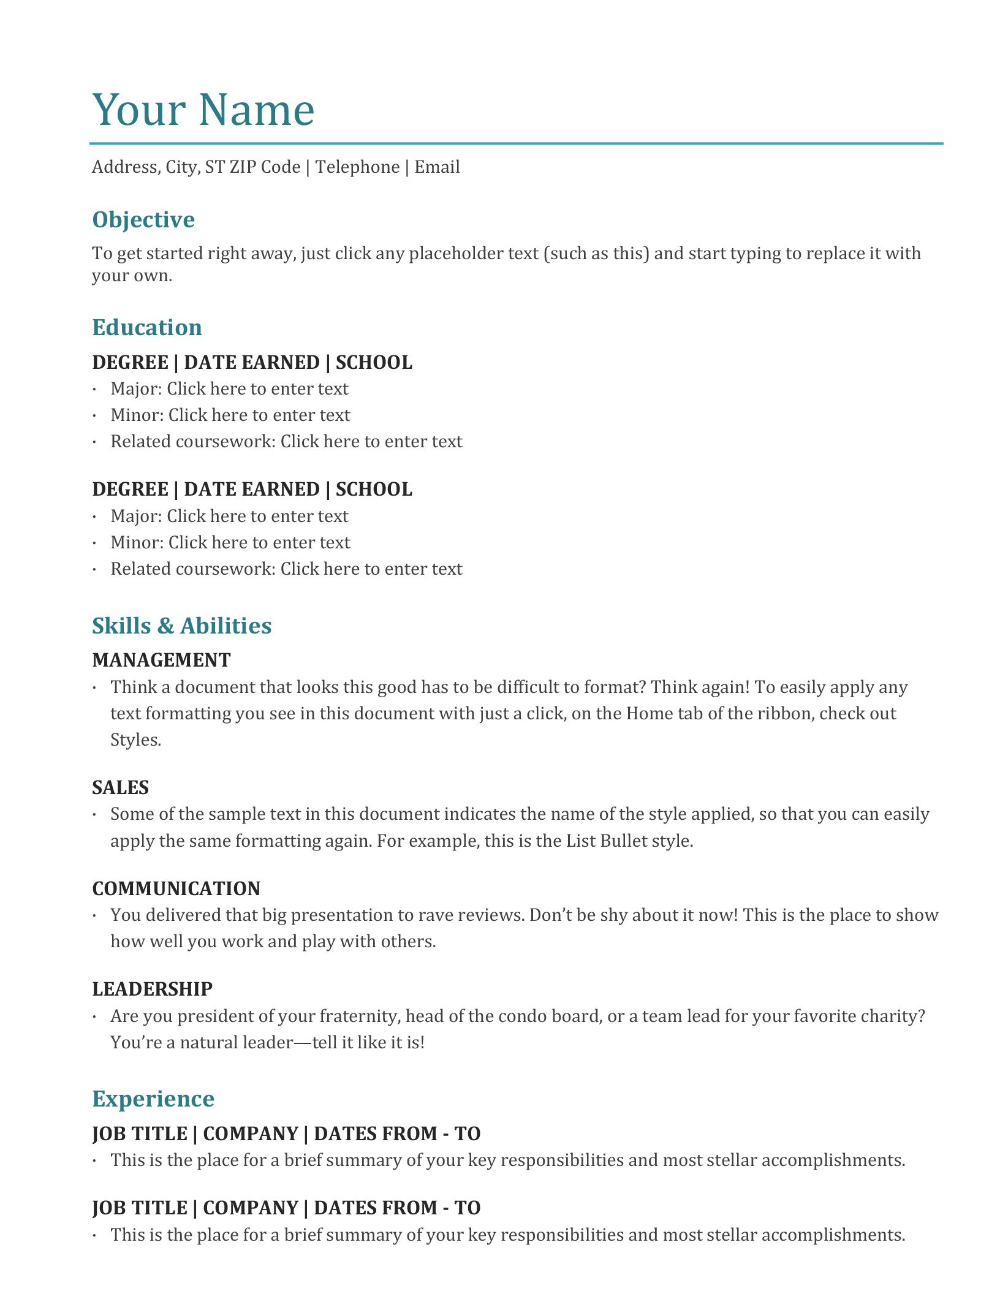 Resumes And Cover Letters Office Inside Microsoft Word Resume Template Free 10 Pro In 2020 Resume Microsoft Word Resume Template Word Microsoft Word Resume Template